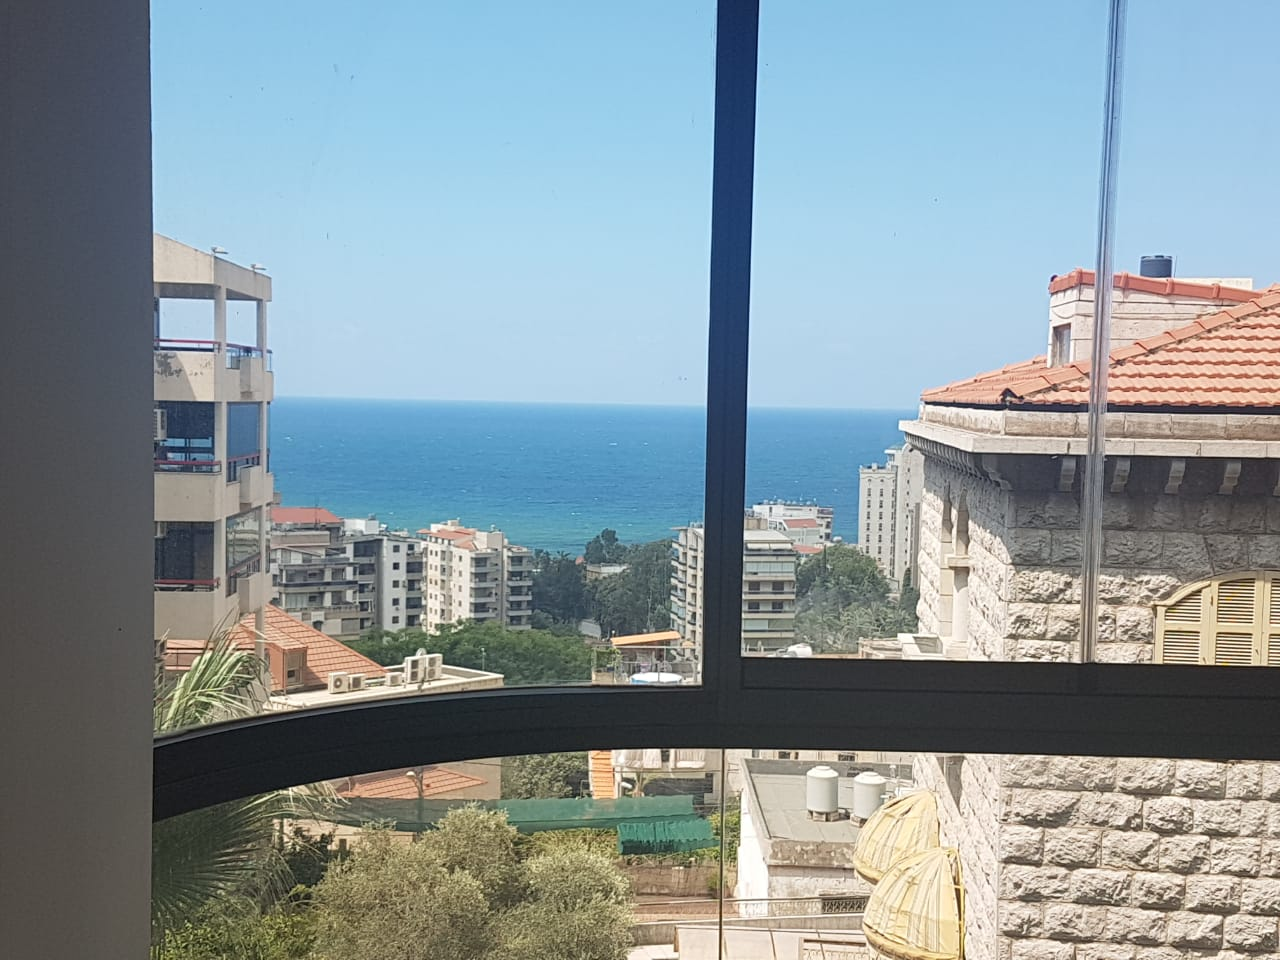 Apartment for sale in Haret Sakher, Jounieh, Lebanon, real estate in Haret Sakher Jounieh Lebanon, buy sell properties in Harte sakher jounieh Lebanon